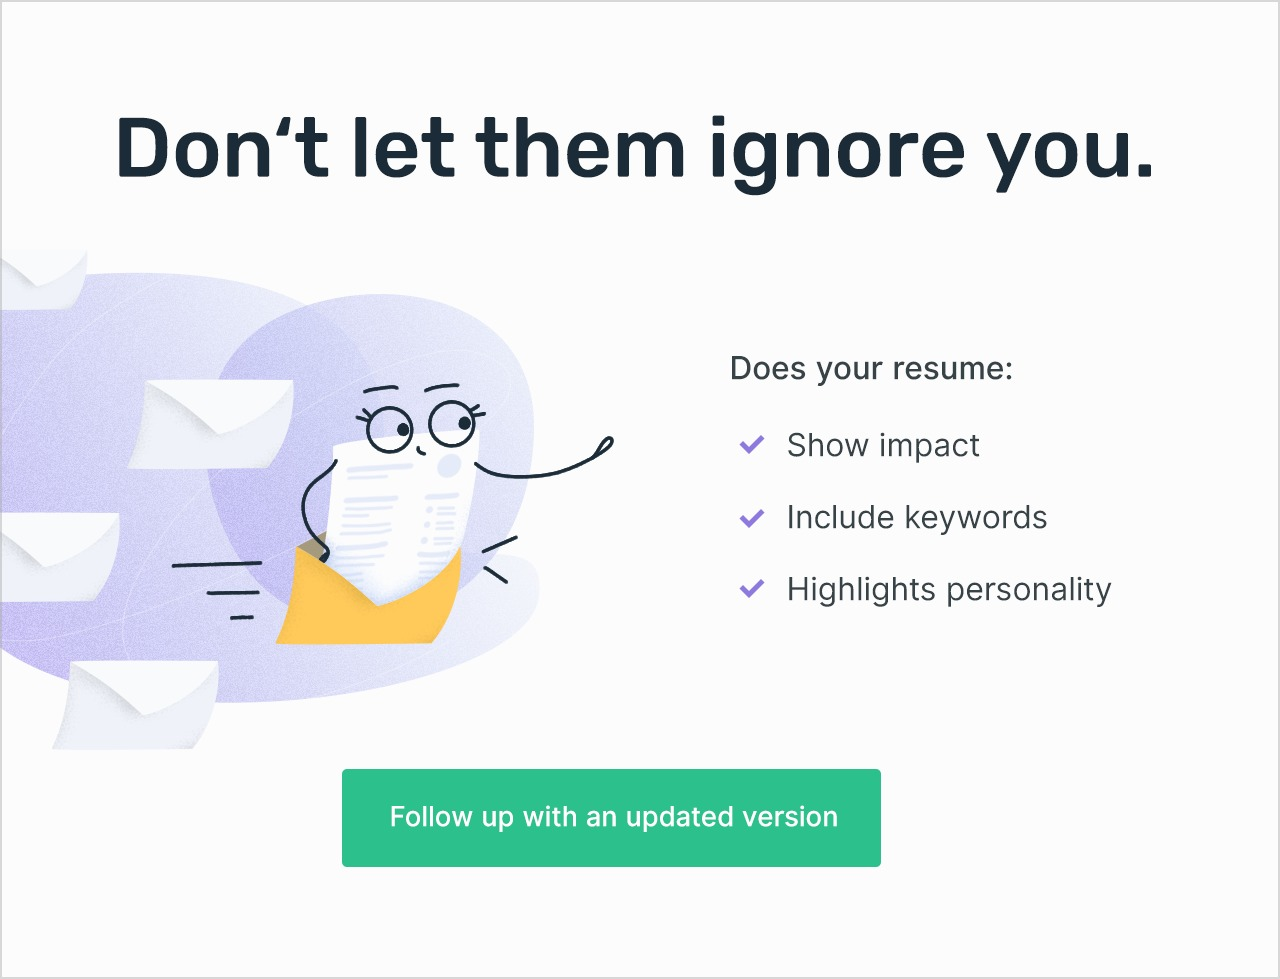 Enhancv Follow-up emails that will get you hired